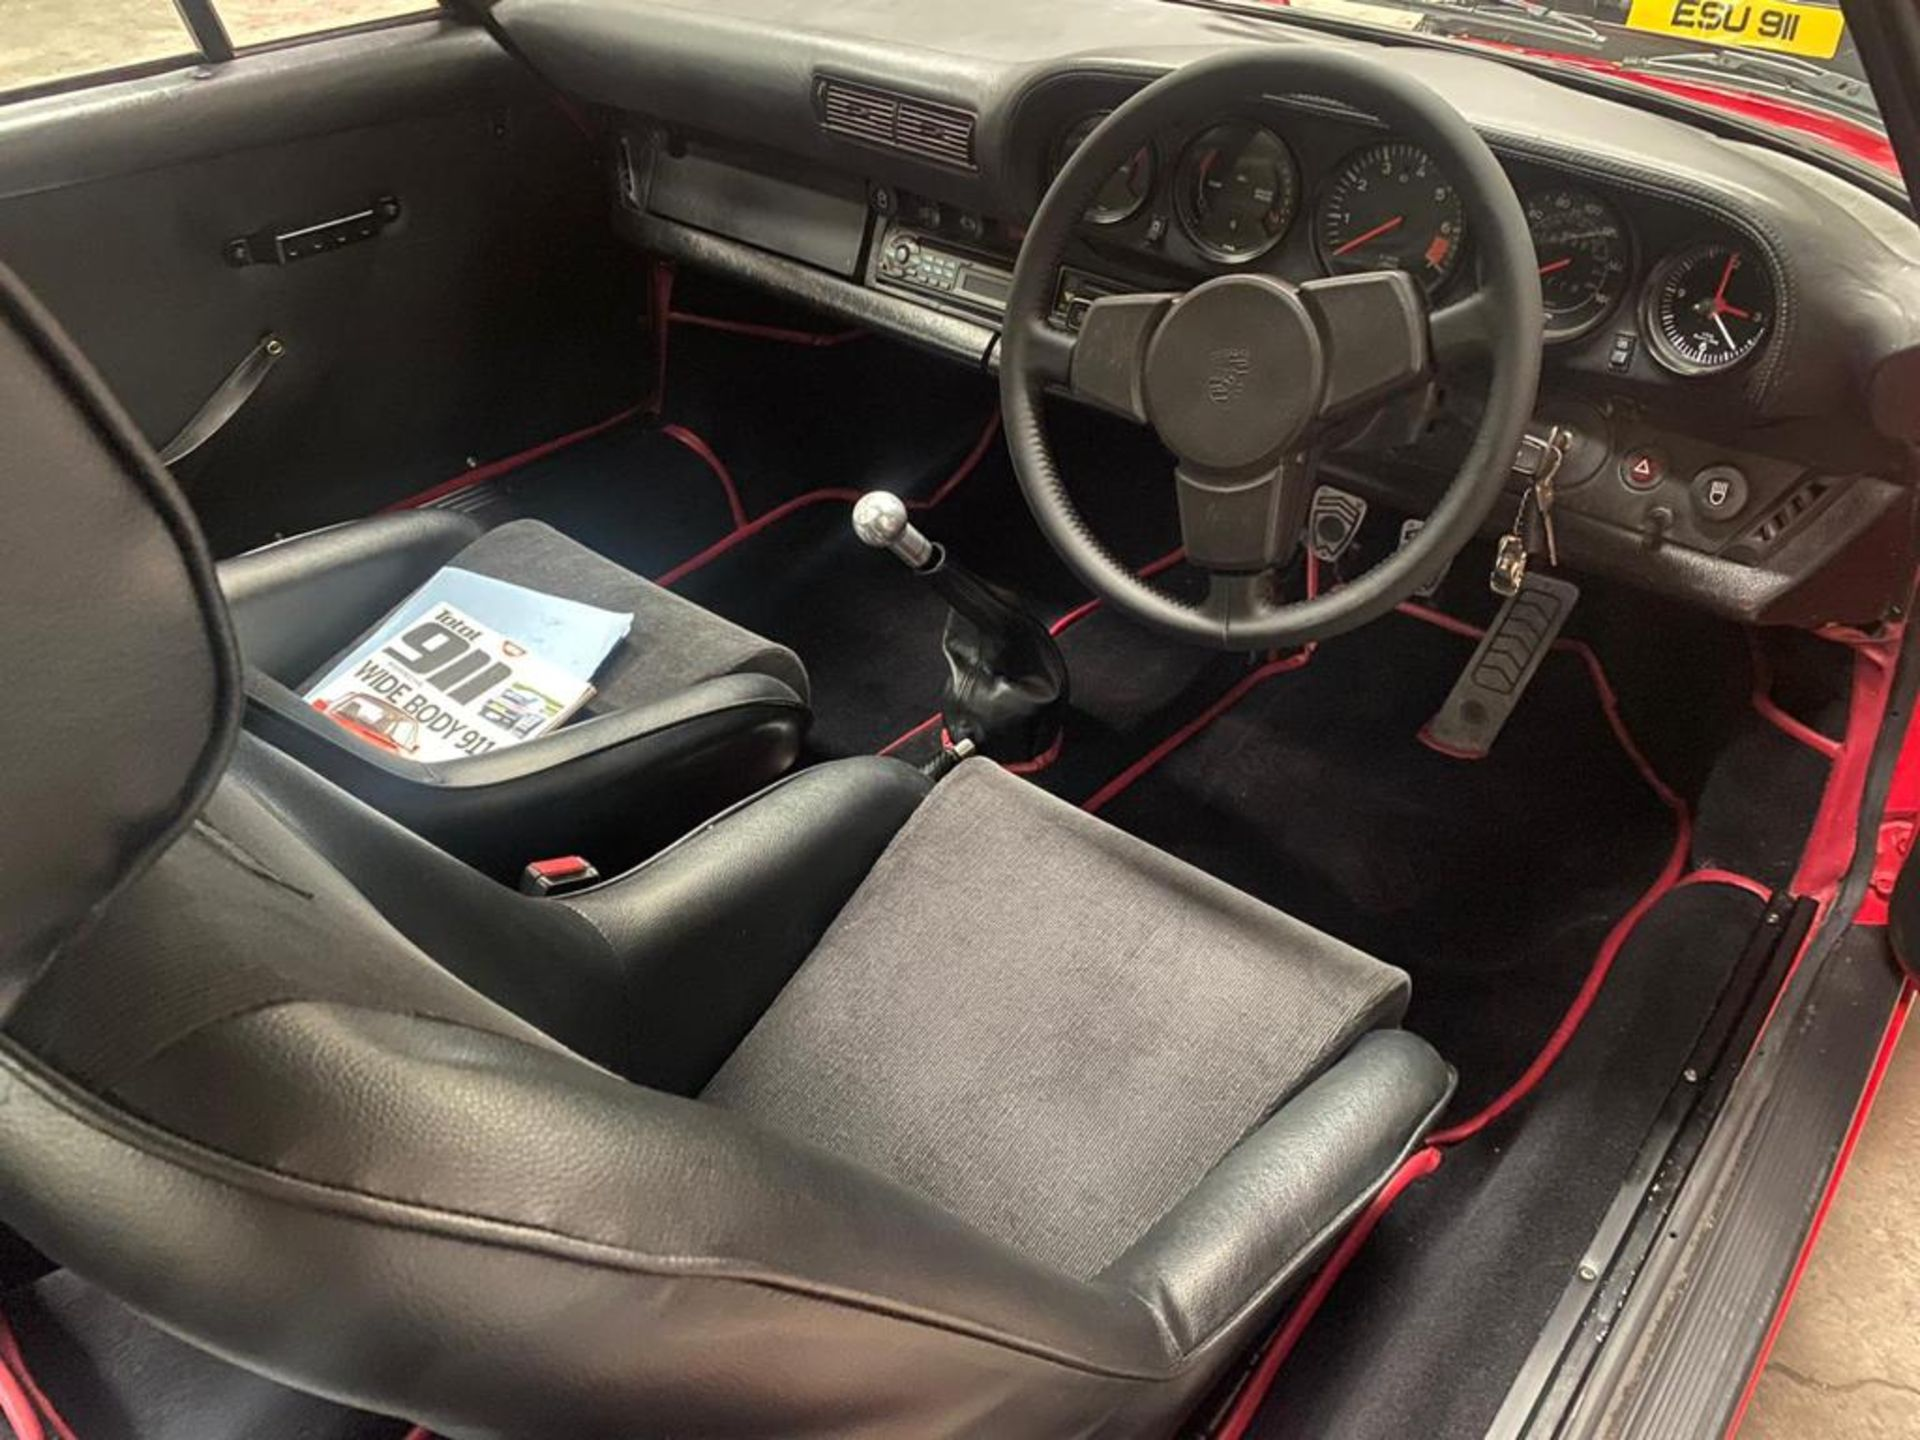 1980 Porsche 911 sc sport but has been fully rebuilt to be identical to a 1974 911 rsr *NO VAT* - Image 7 of 12